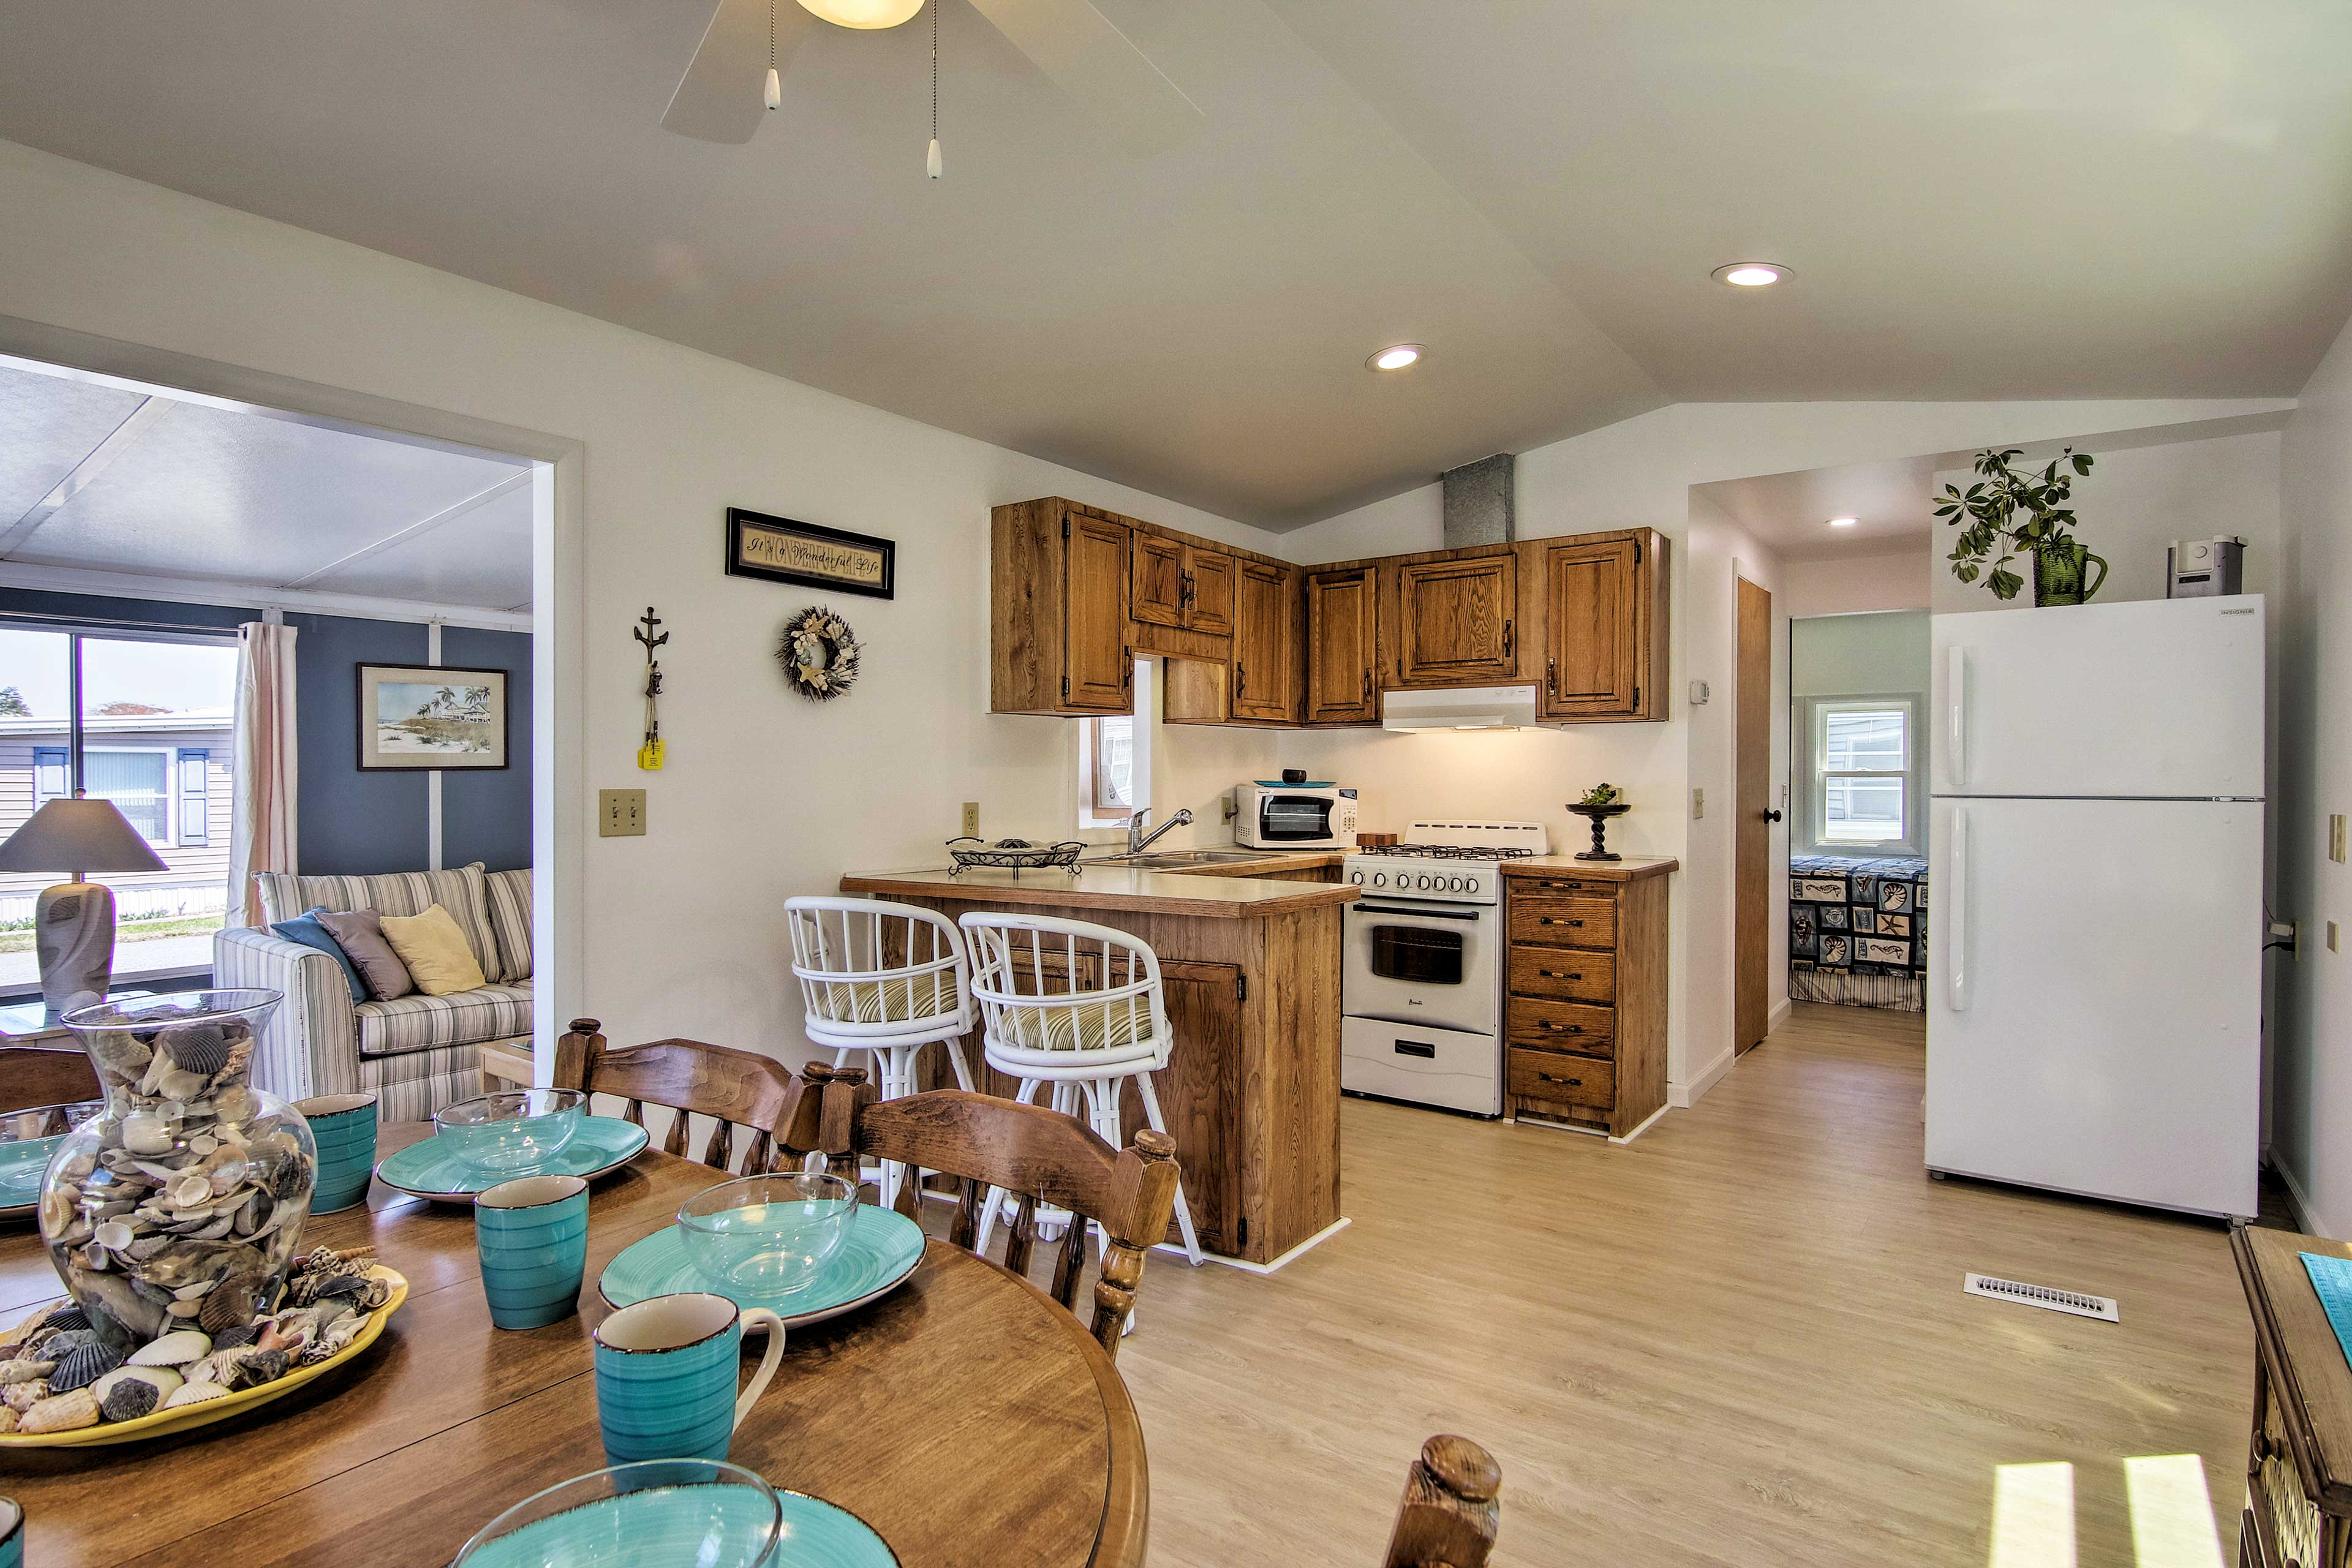 Enjoy homemade meals in the spacious kitchen!